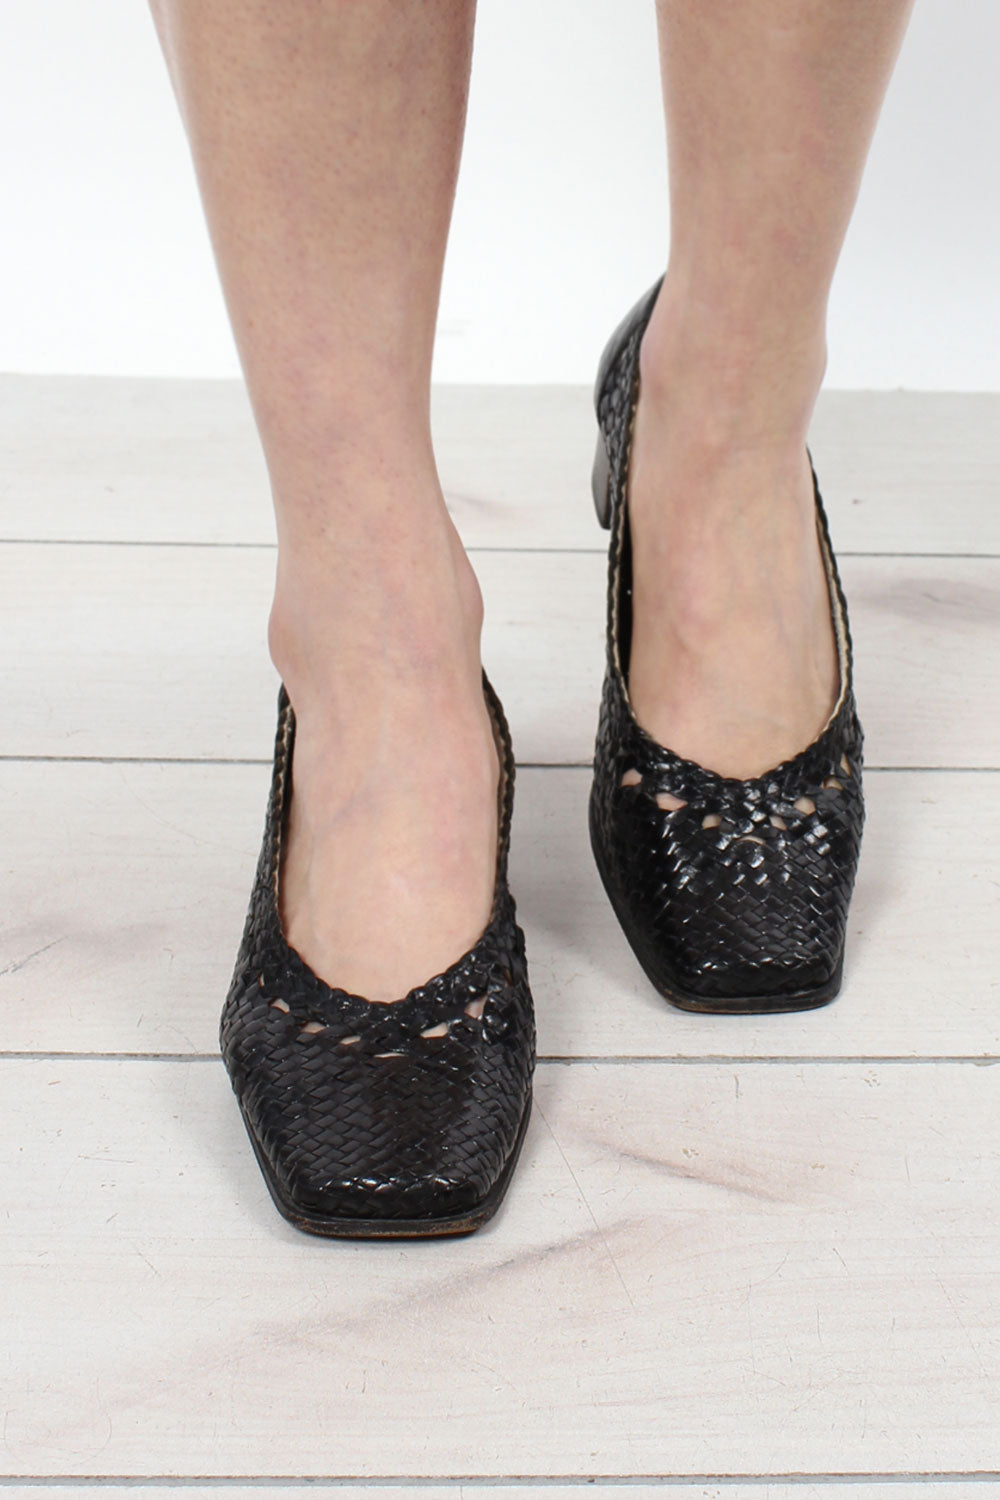 Botticelli Woven Leather Shoes 6.5-7